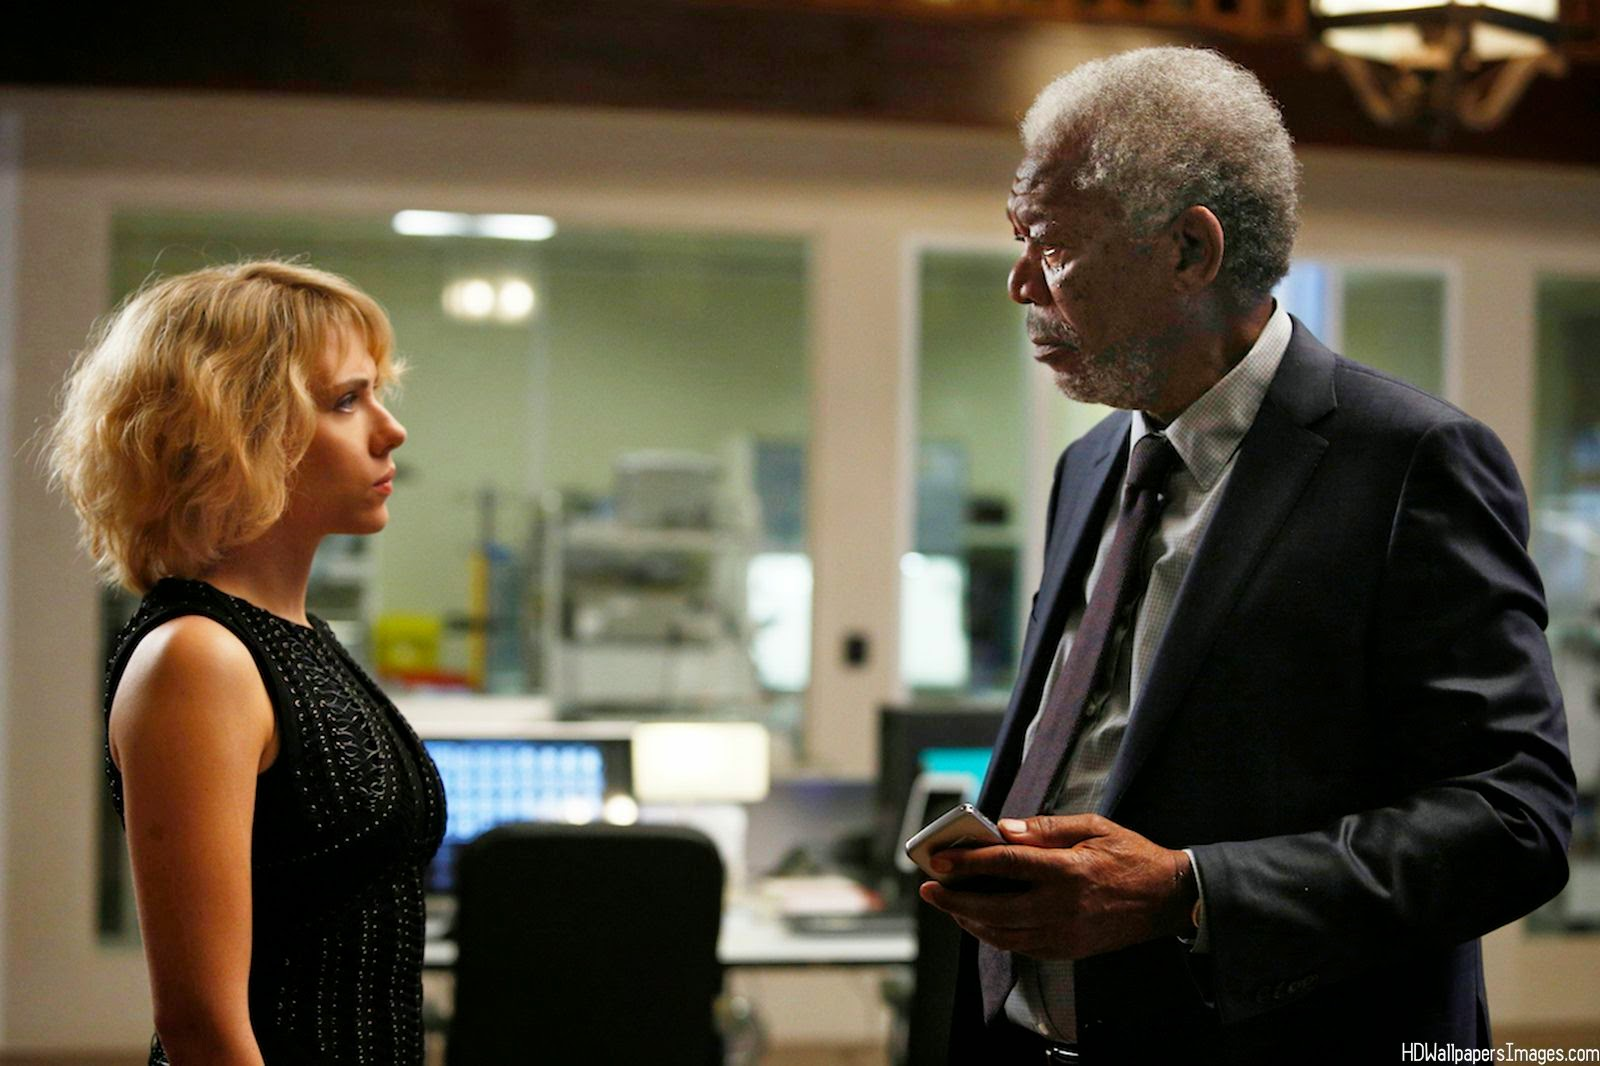 Scarlet Johansson and Morgan Freeman in Lucy, Directed by Luc Besson